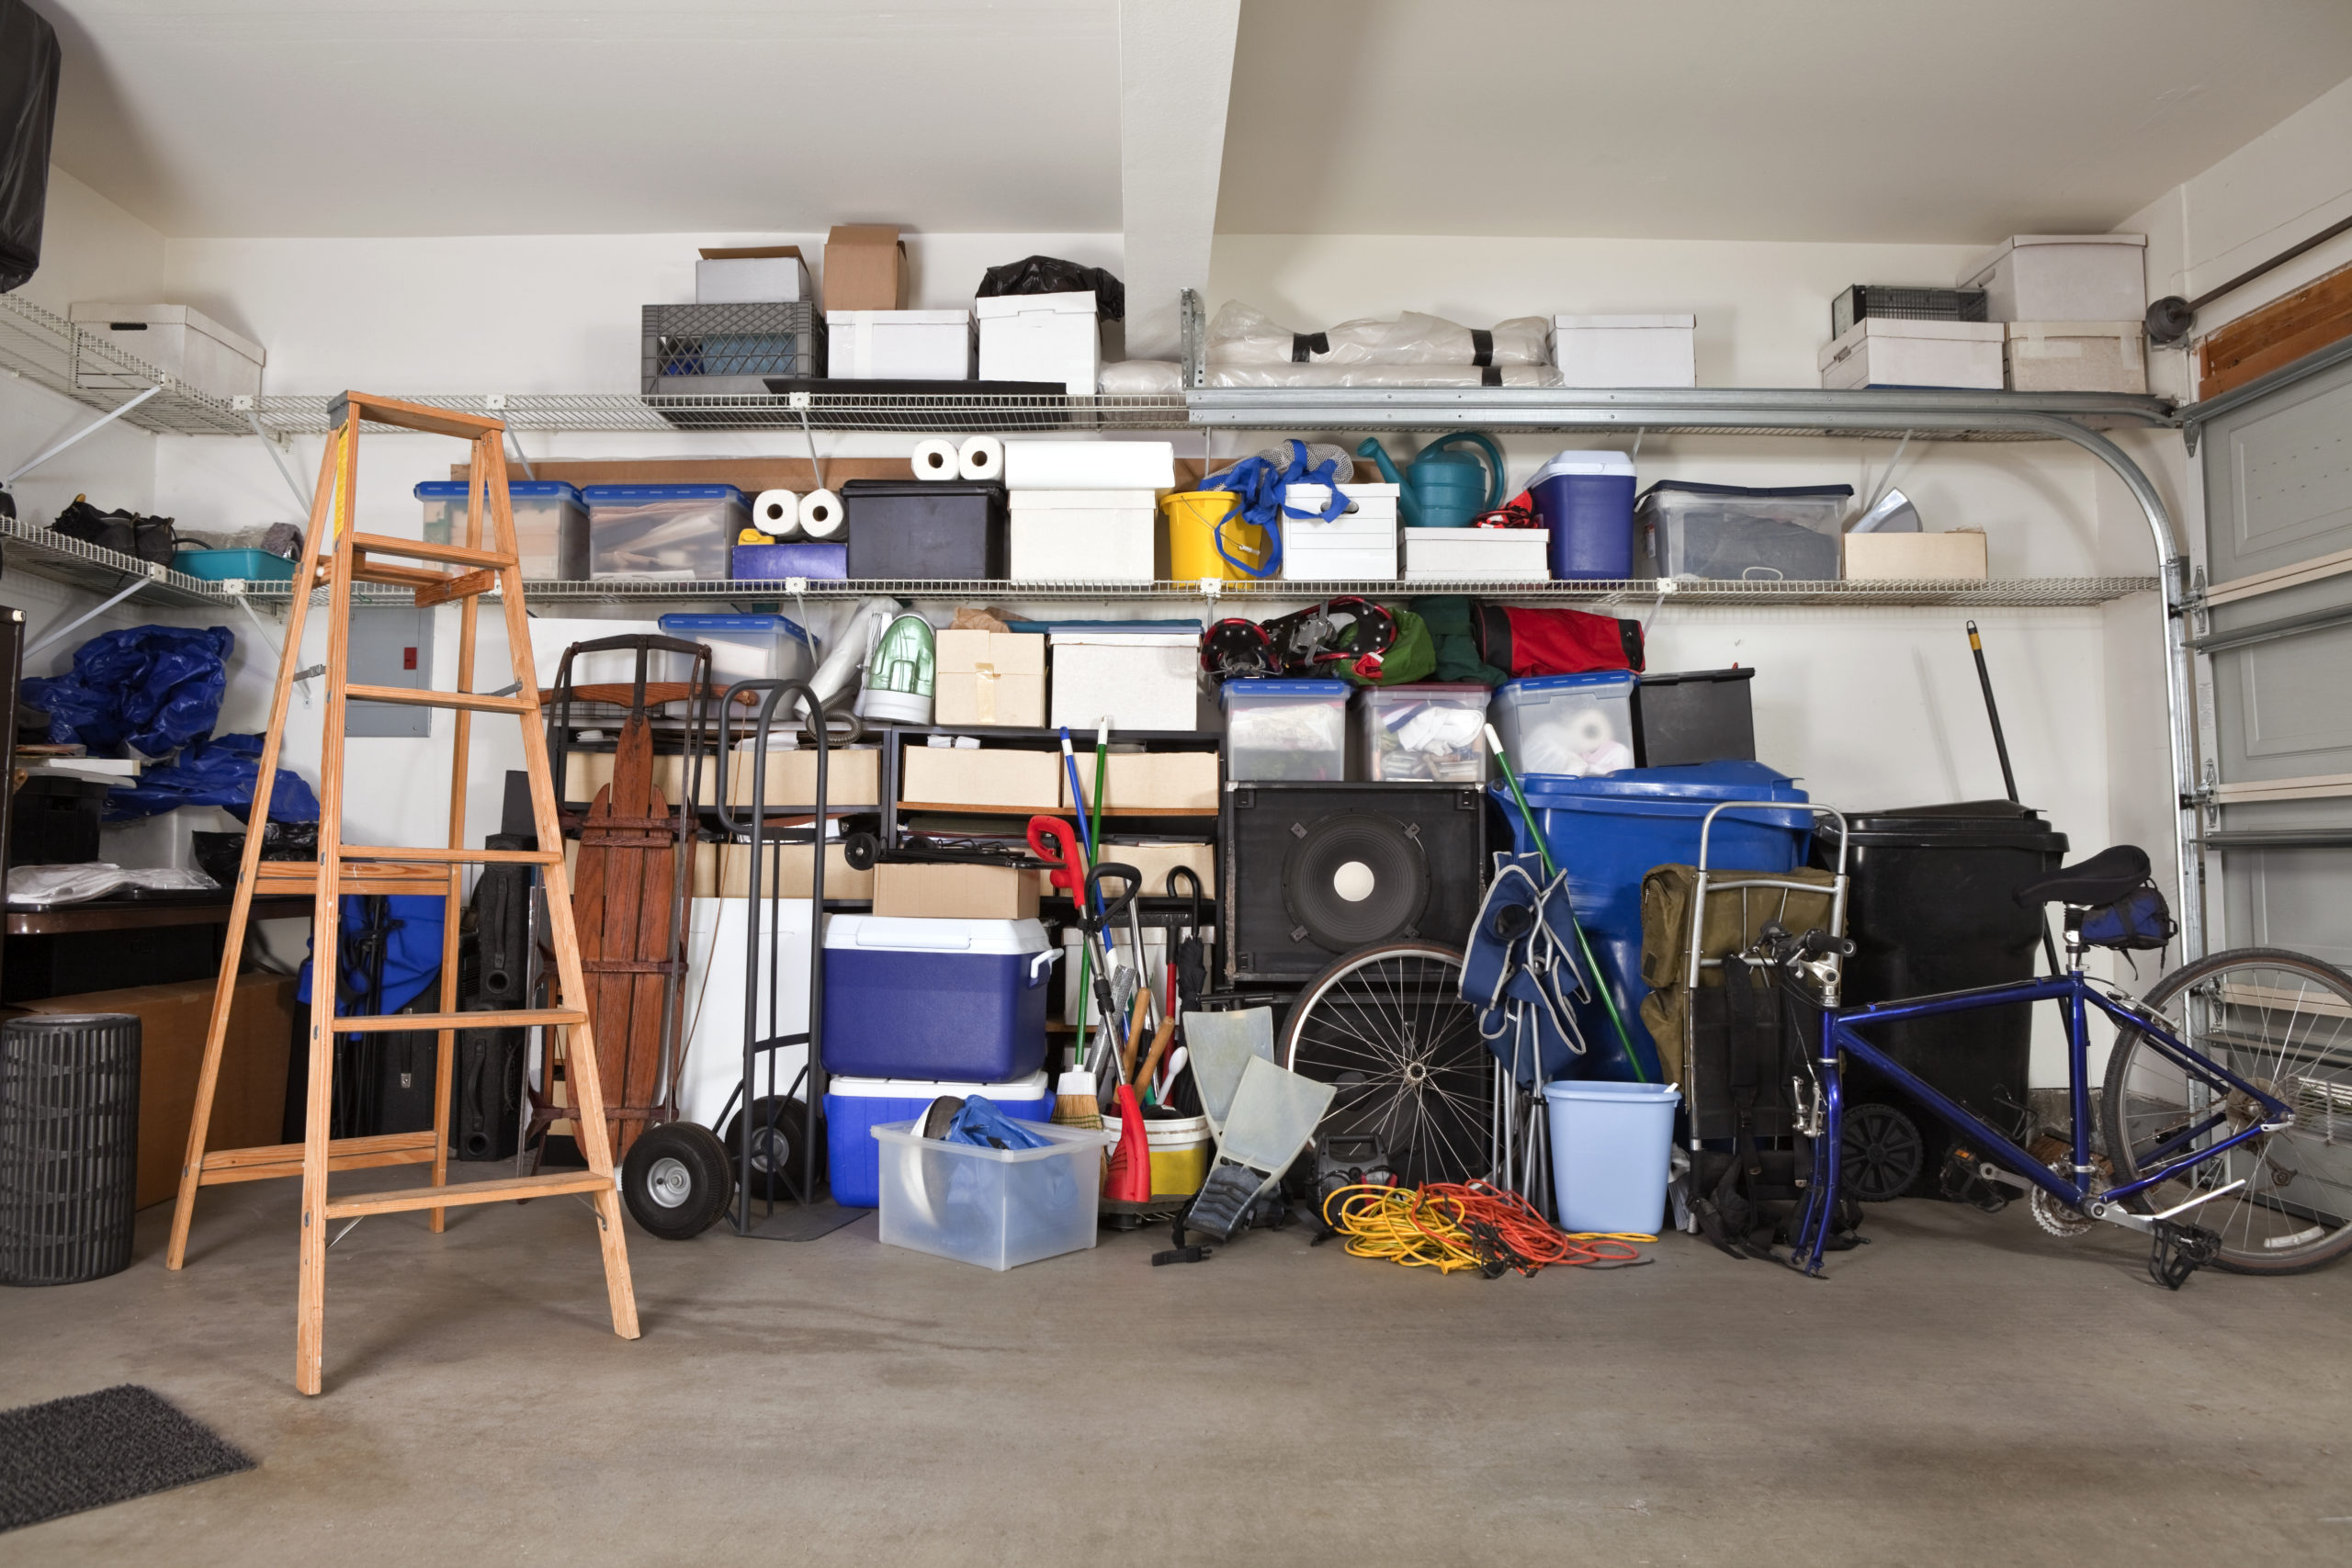 I Bought a Foreclosed Home Full of Junk, Now What?